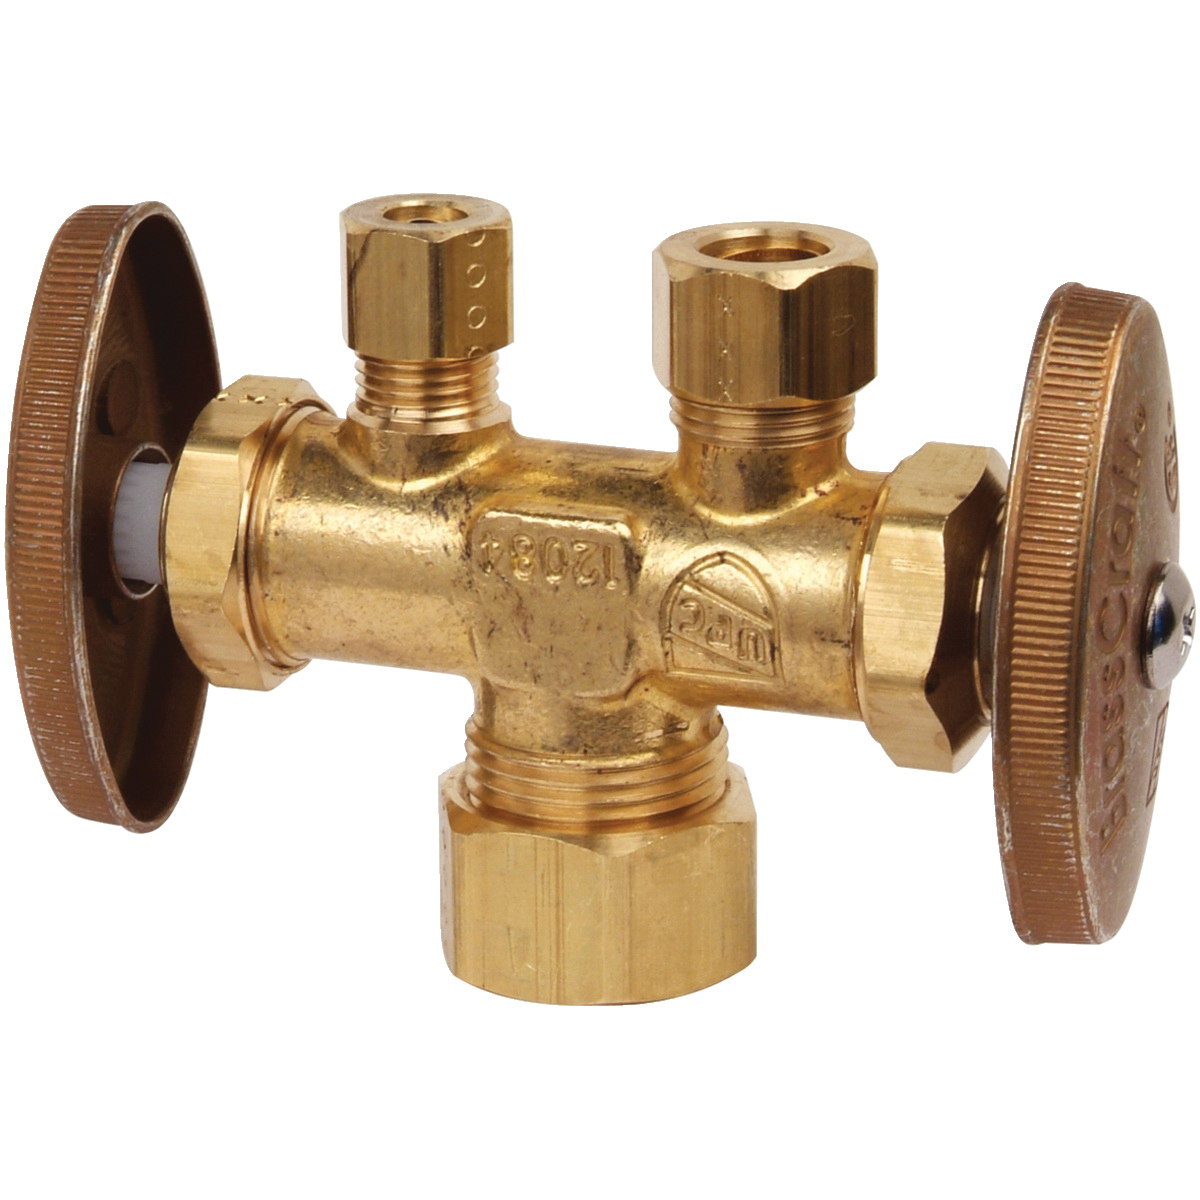 BrassCraft® CR1900DVSXR Brass Straight Supply Stop Valve, 1/2 in x 3/8 in x 1/4 in, Compression, 125 psi, 40 - 140 deg F